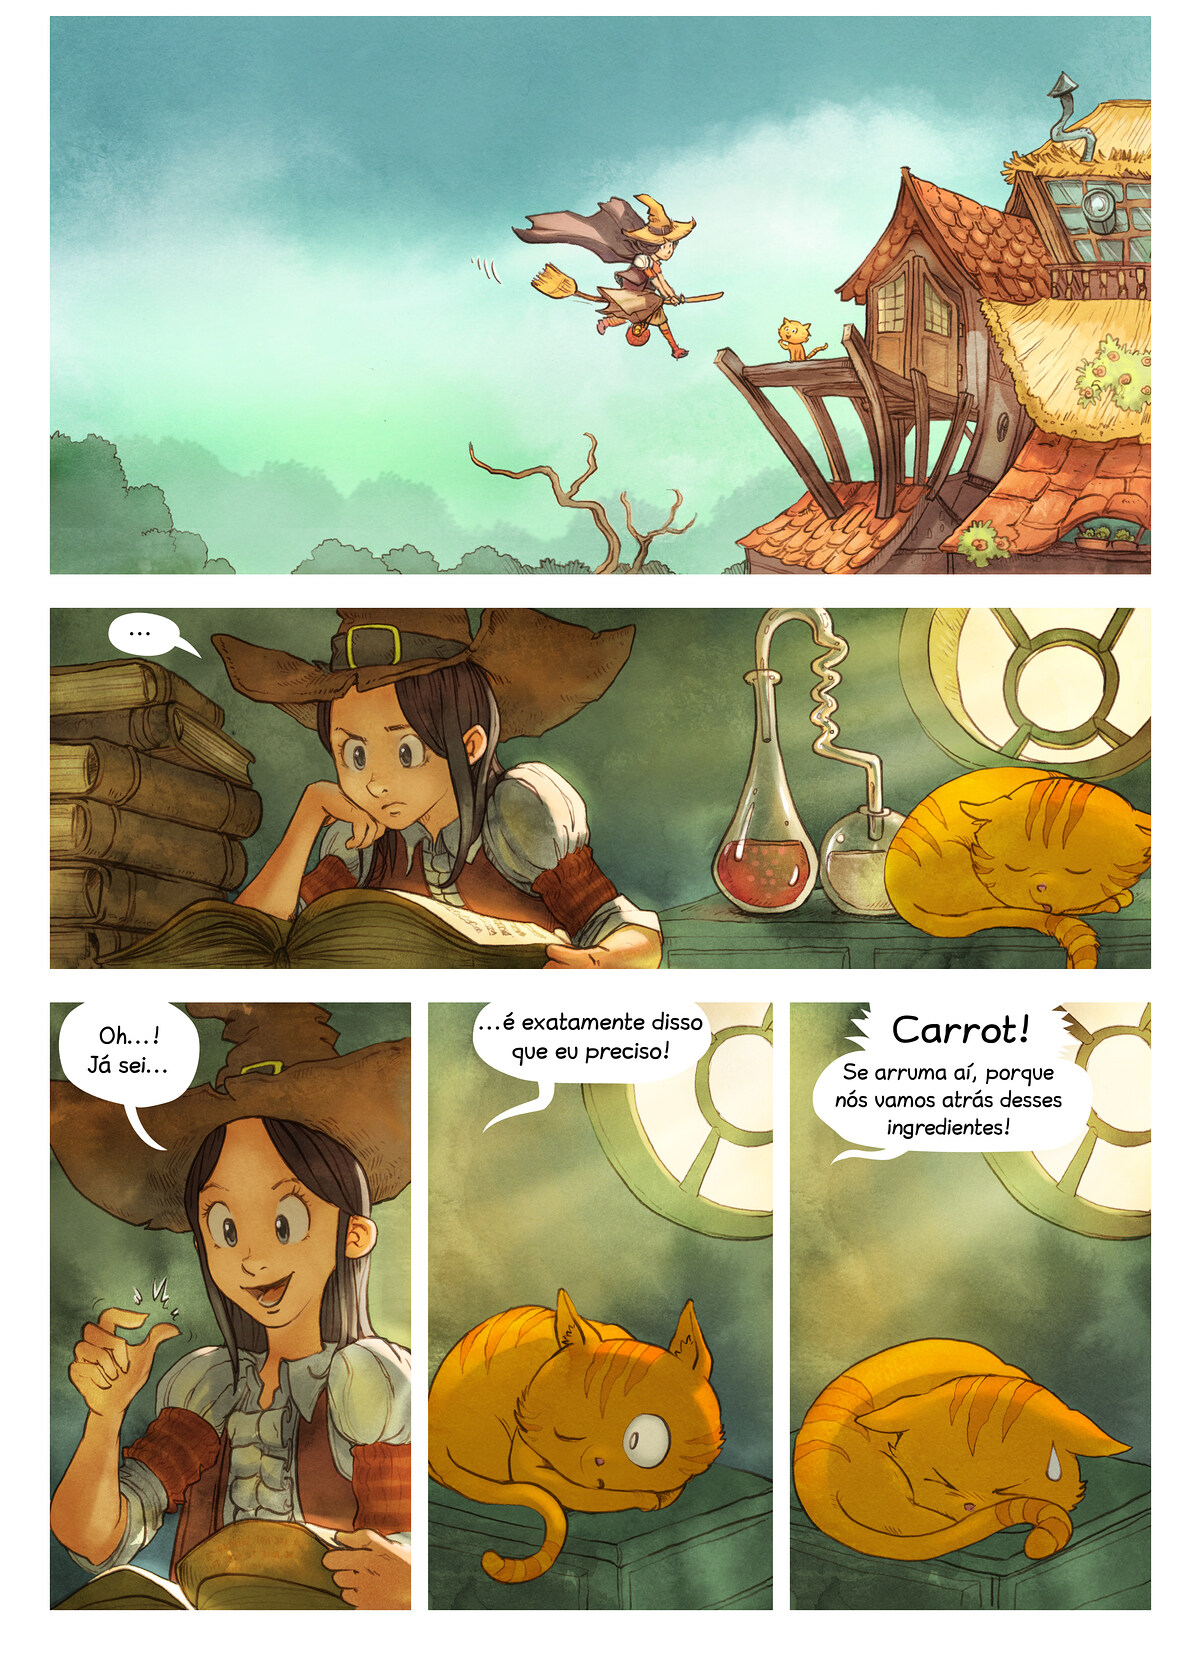 A webcomic page of Pepper&Carrot, episódio 3 [pt], página 4